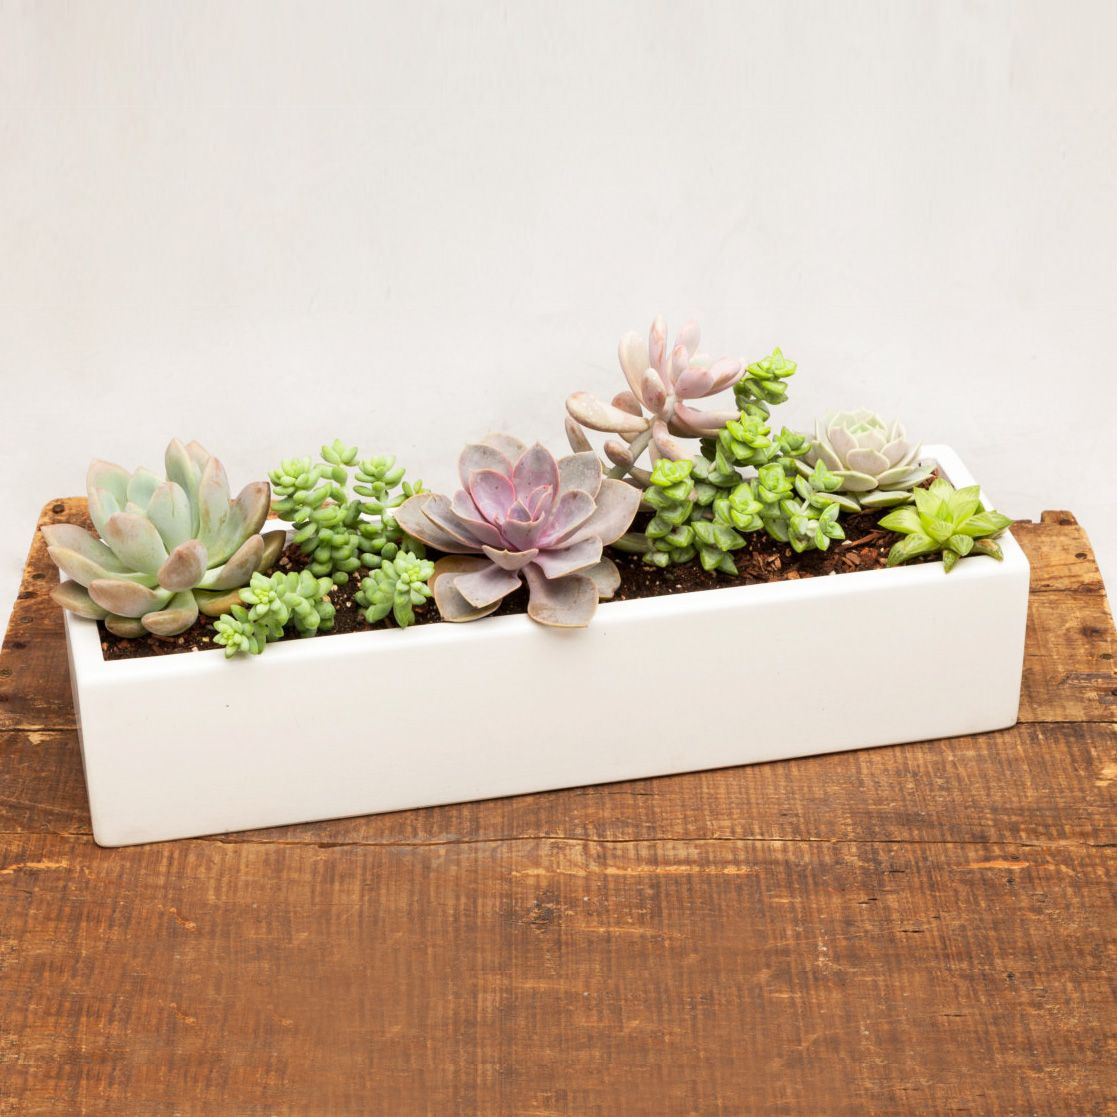 Cool Succulent Planter New Home Gifts Pinterest